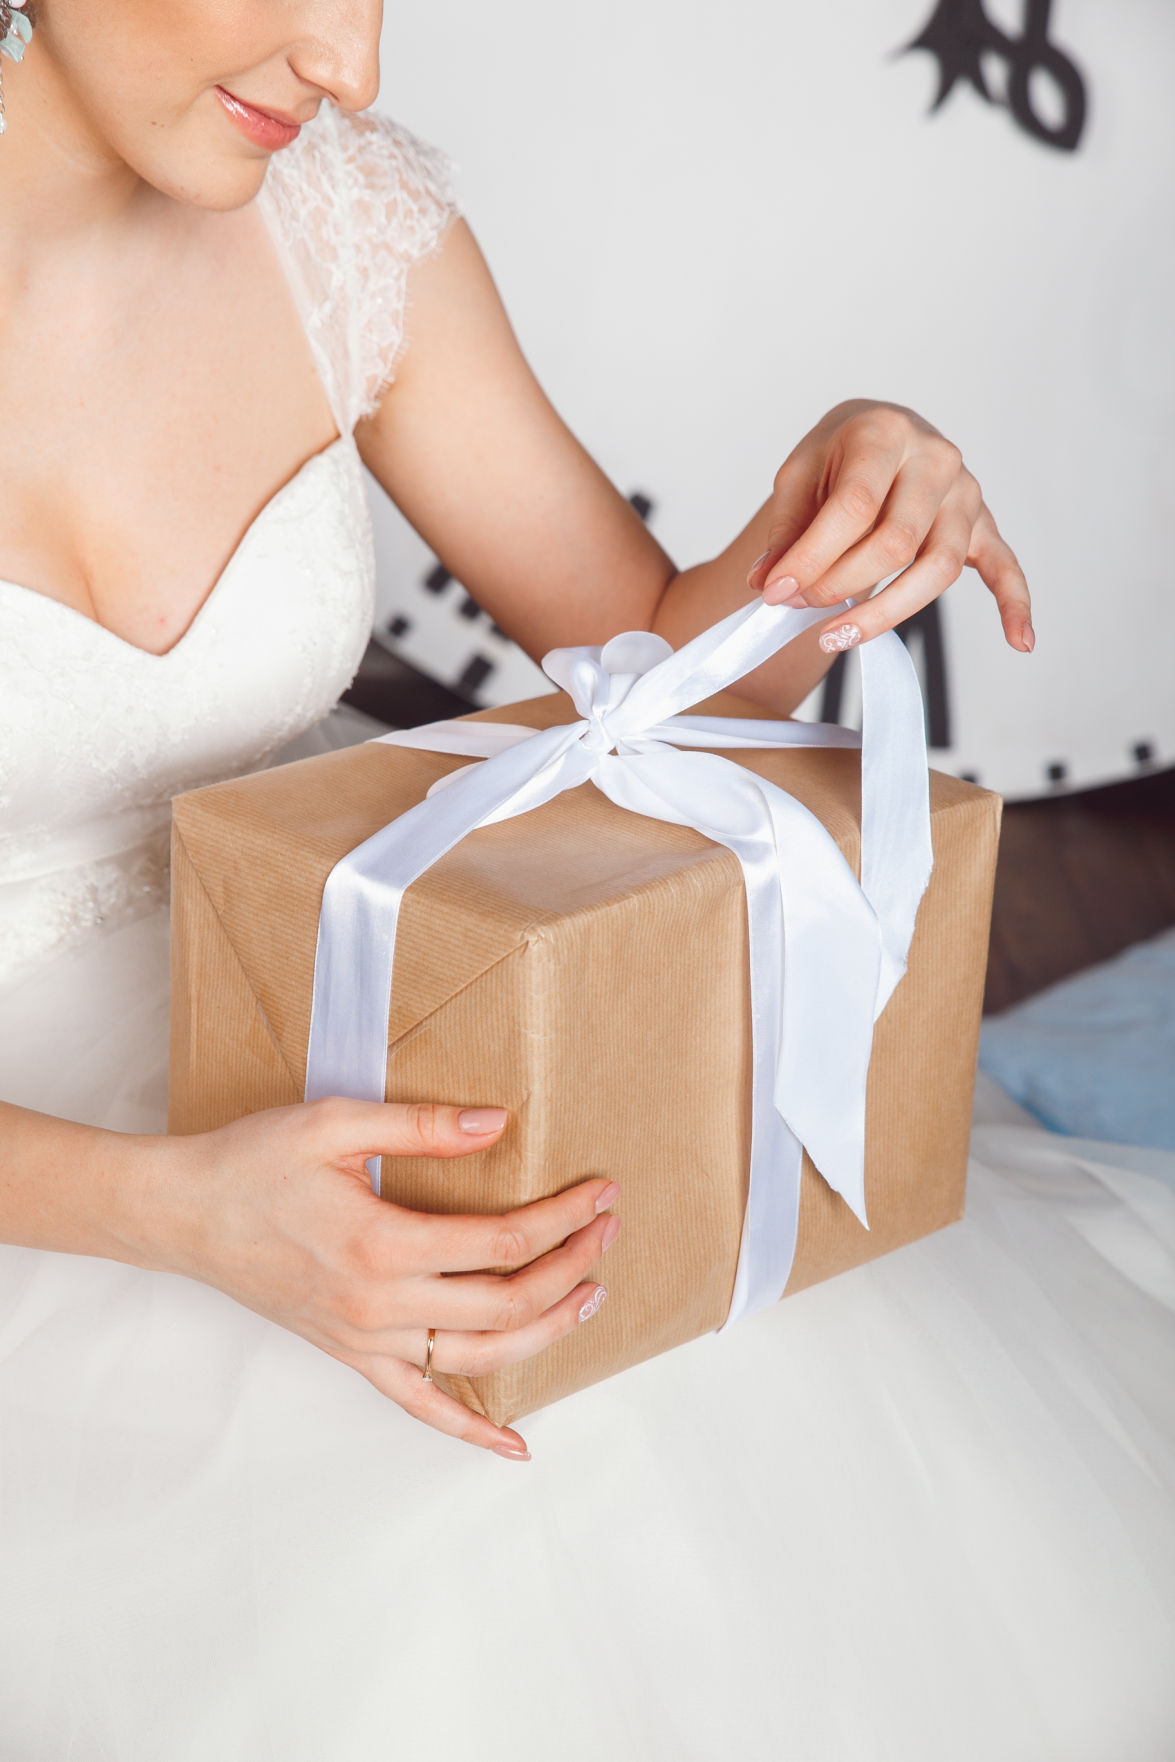 How much should I spend on a wedding gift? Here are six guidelines ...